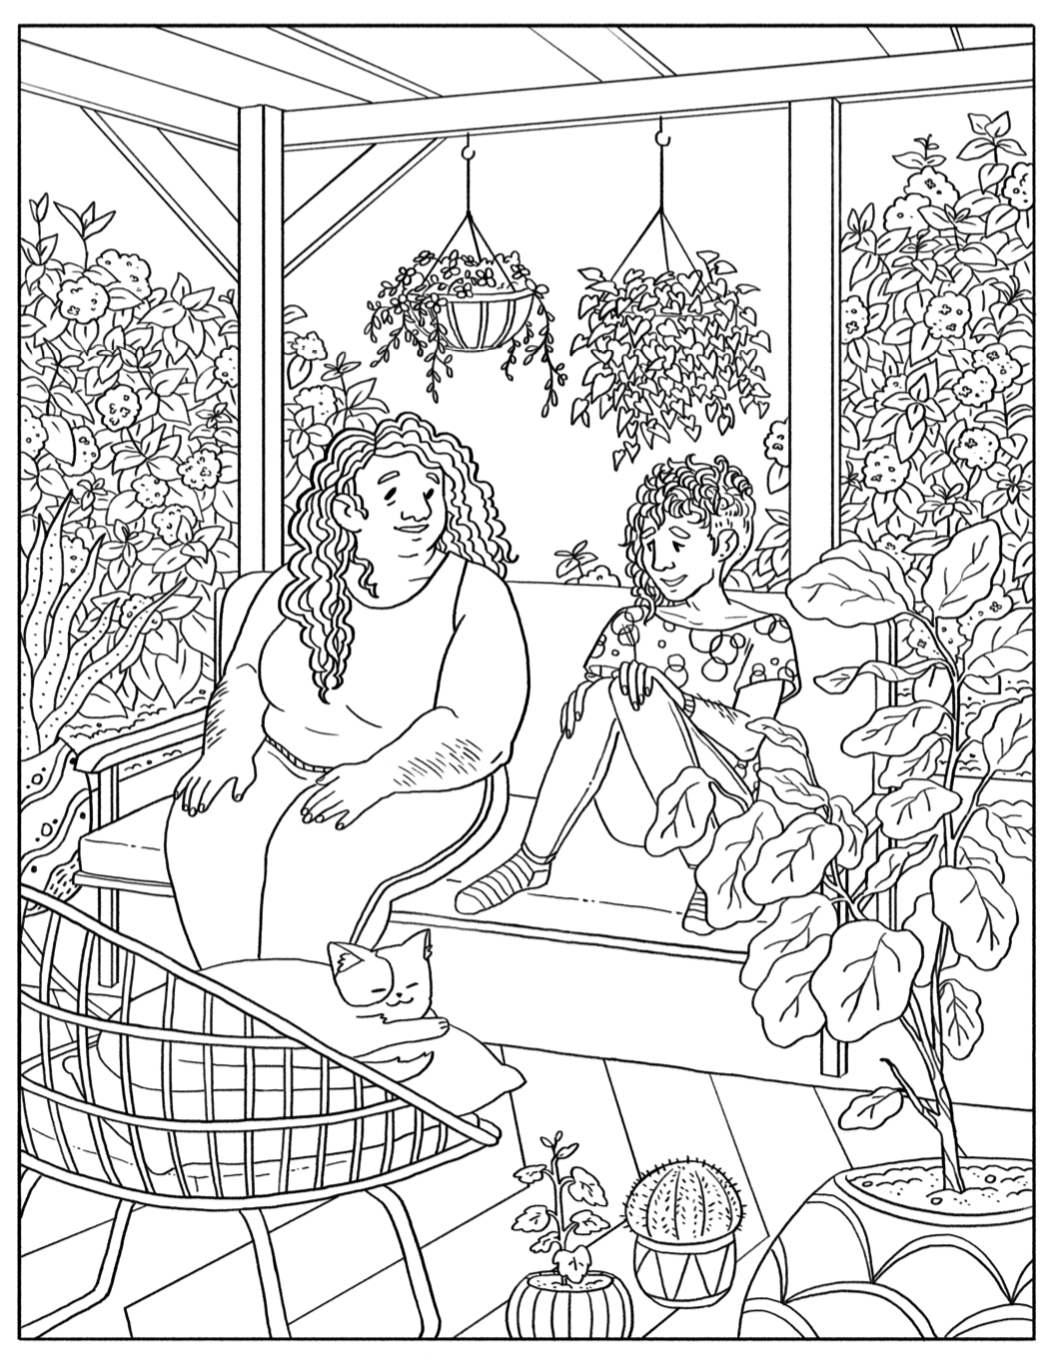 Click the image to download the coloring page by Ashanti Fortson!